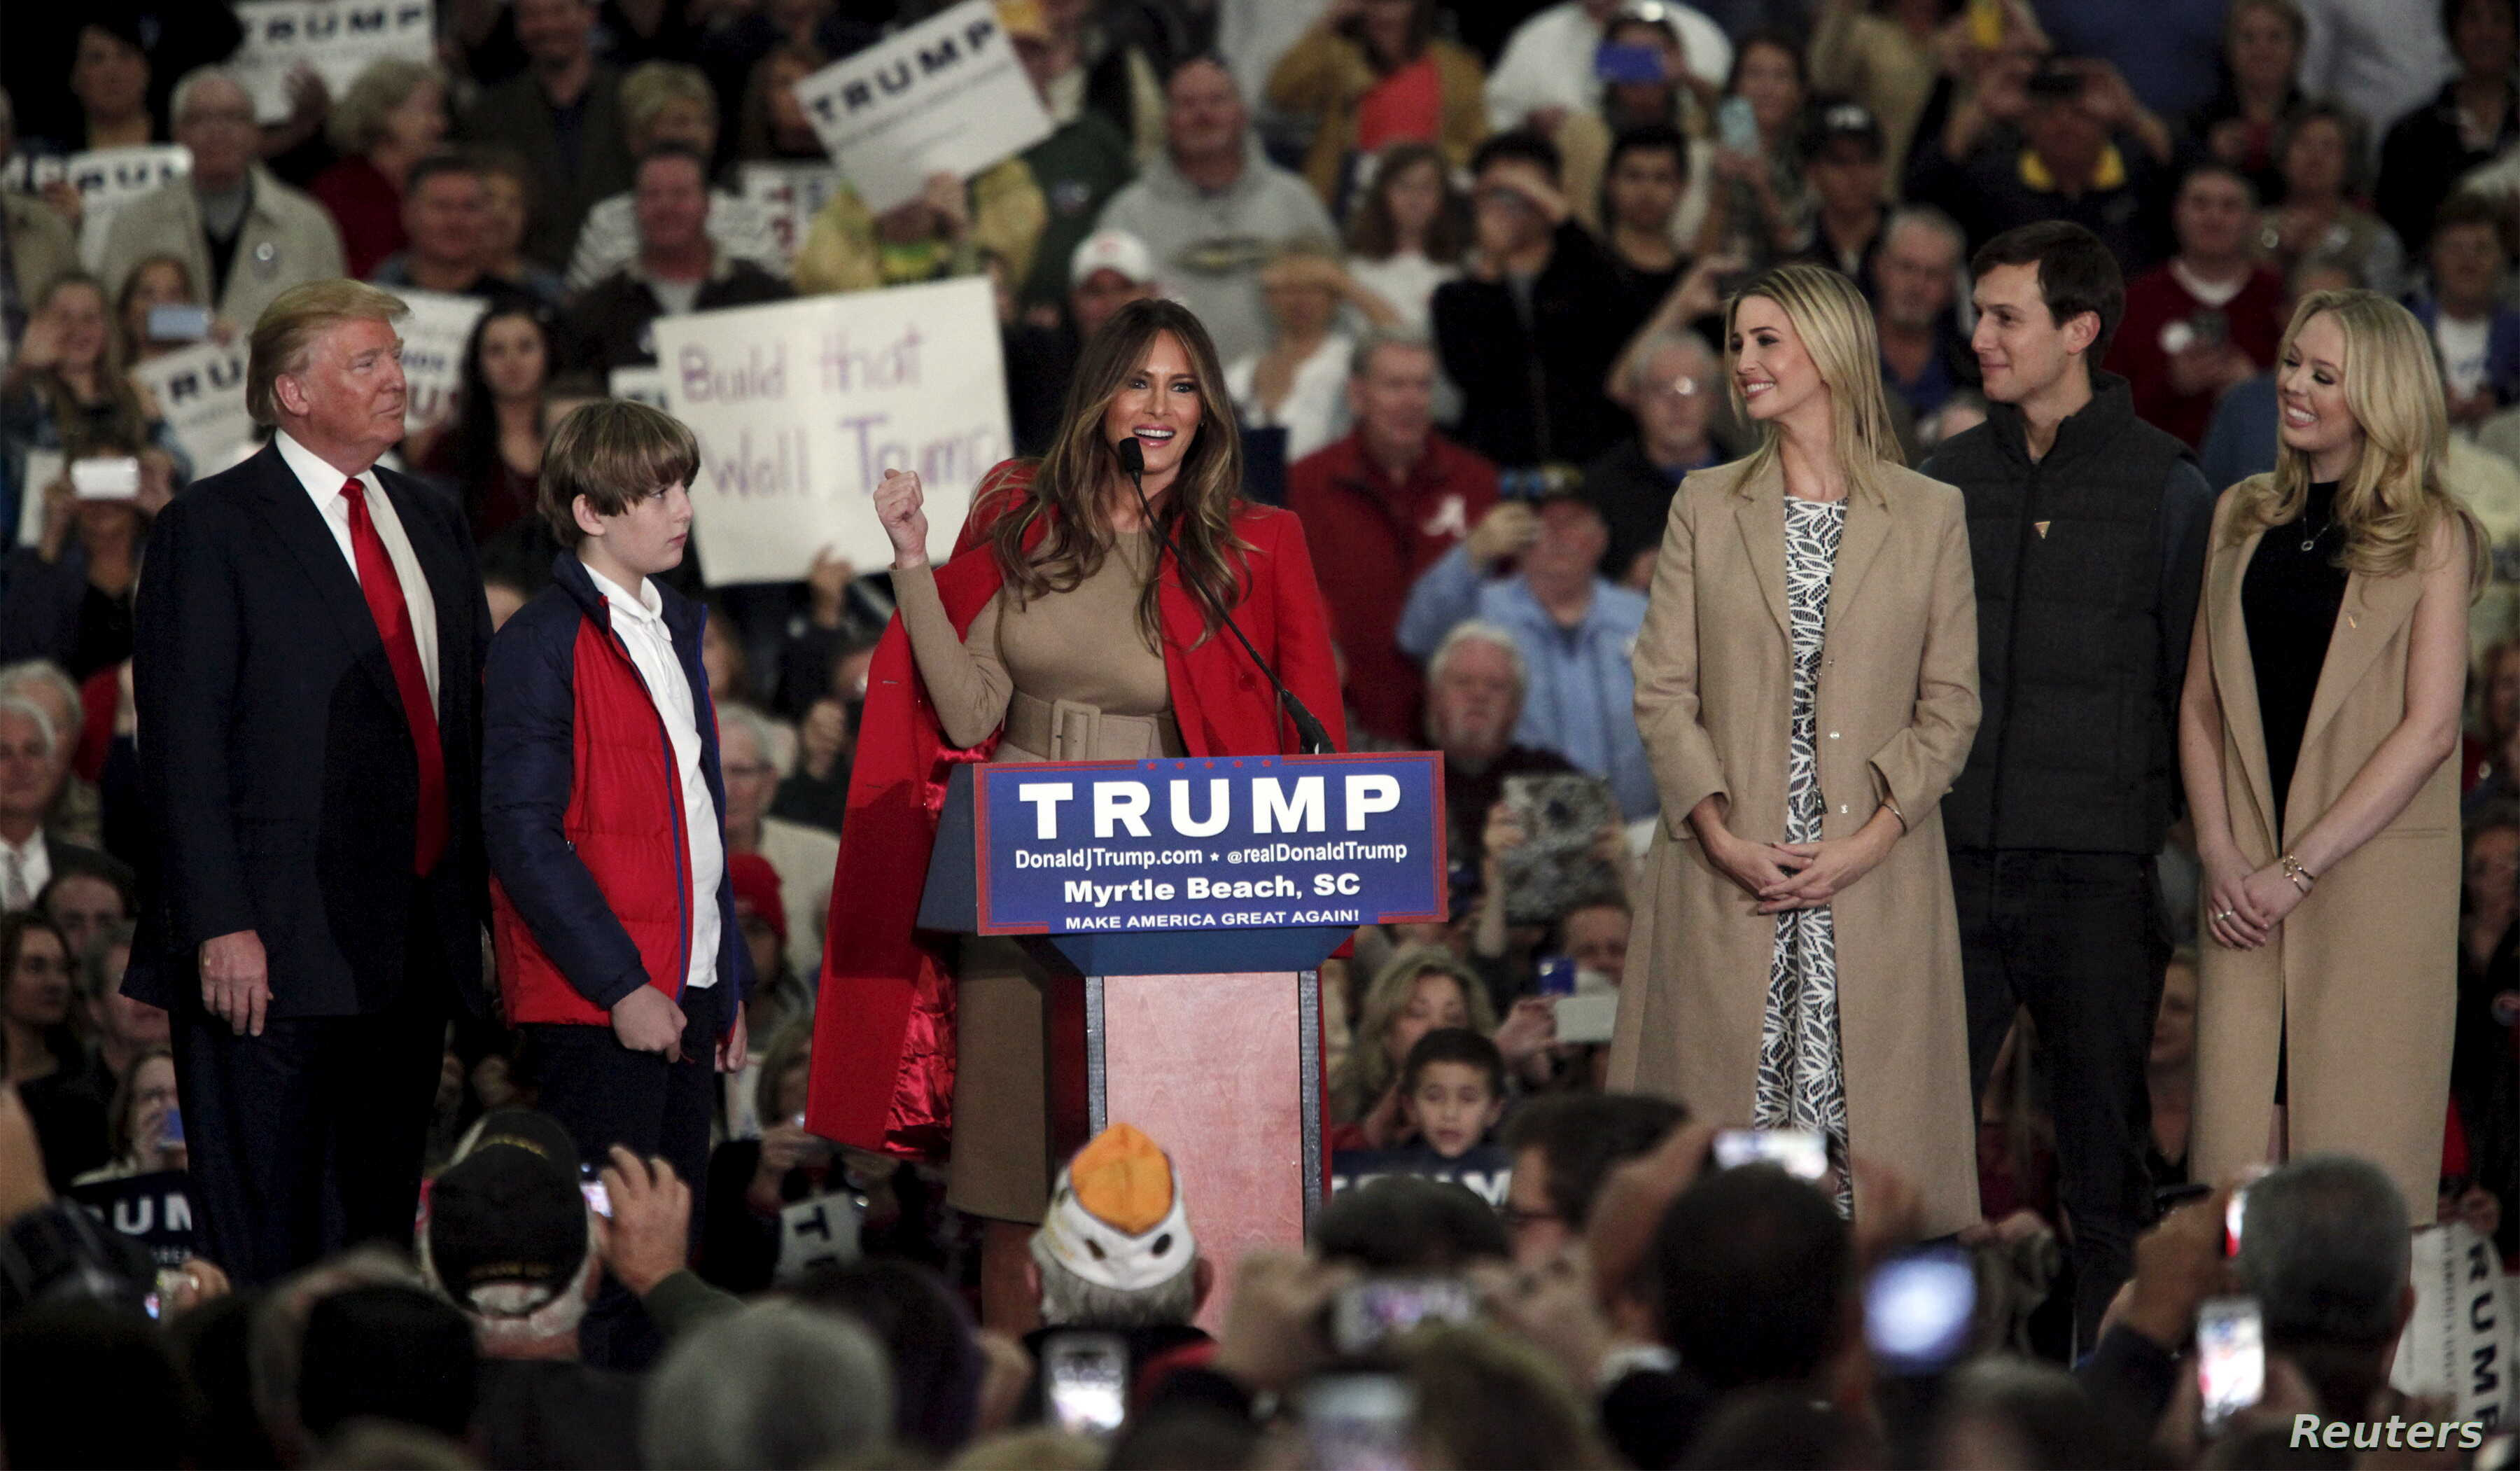 FILE - Melania Trump talks to the crowd as U.S. Republican presidential candidate Donald Trump introduces his family at a rally at the Myrtle Beach Convention Center in Myrtle Beach, South Carolina, Nov. 24, 2015.